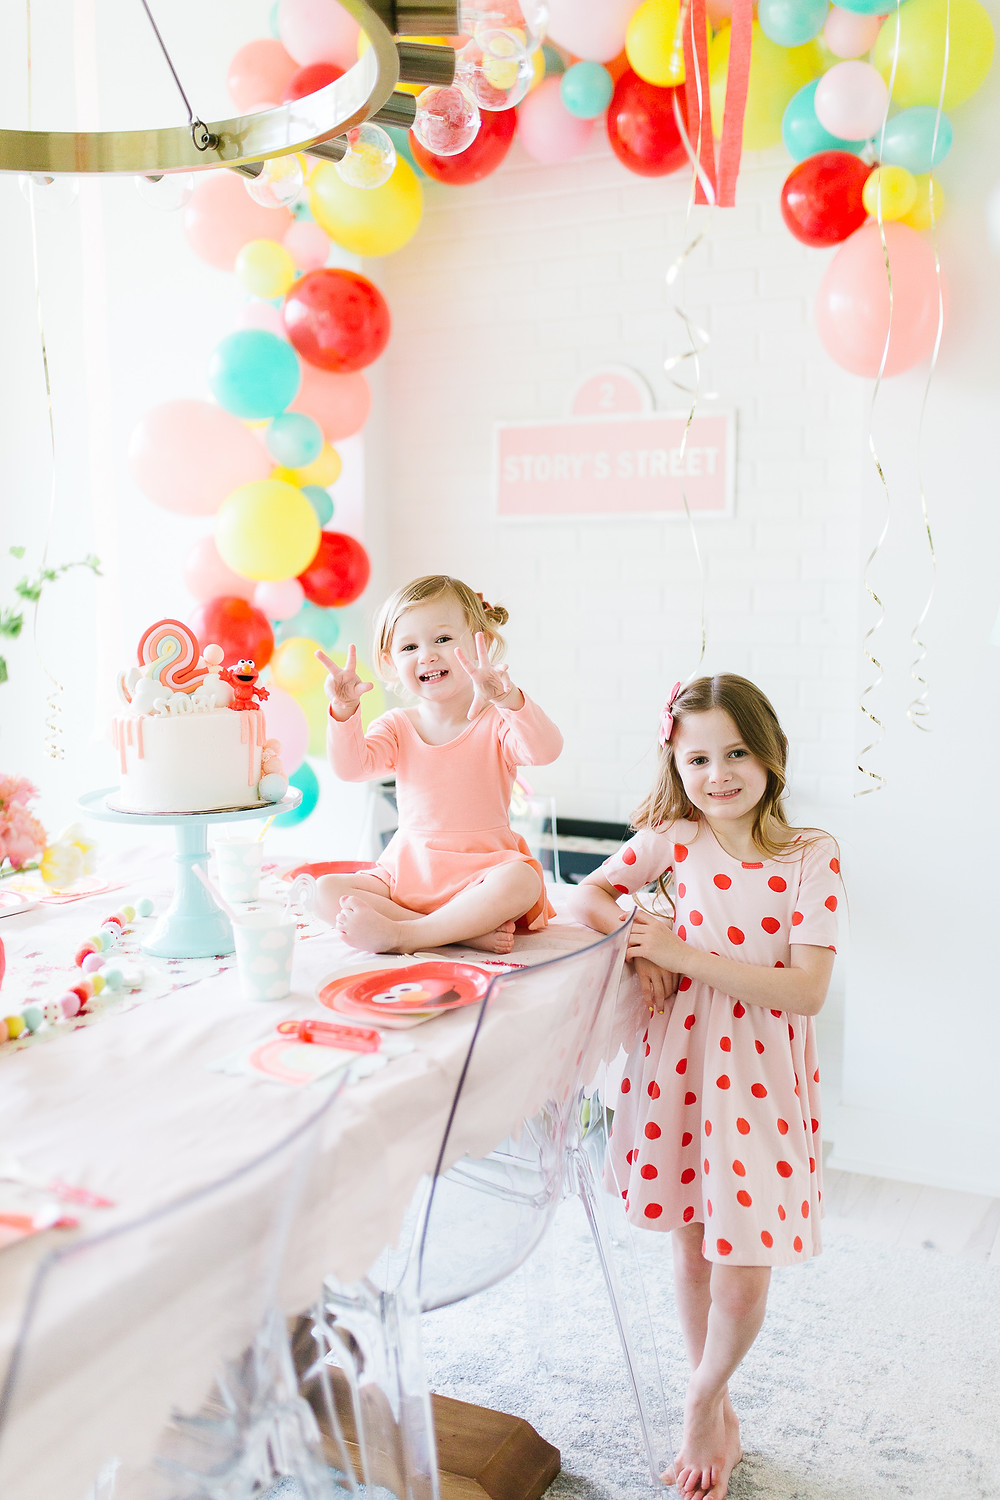 A Sesame Street Elmo birthday party with Elmo tableware, colourful balloons and streamers hanging, a pink Elmo birthday cake, pink wall signage and an Elmo floral centrepiece.